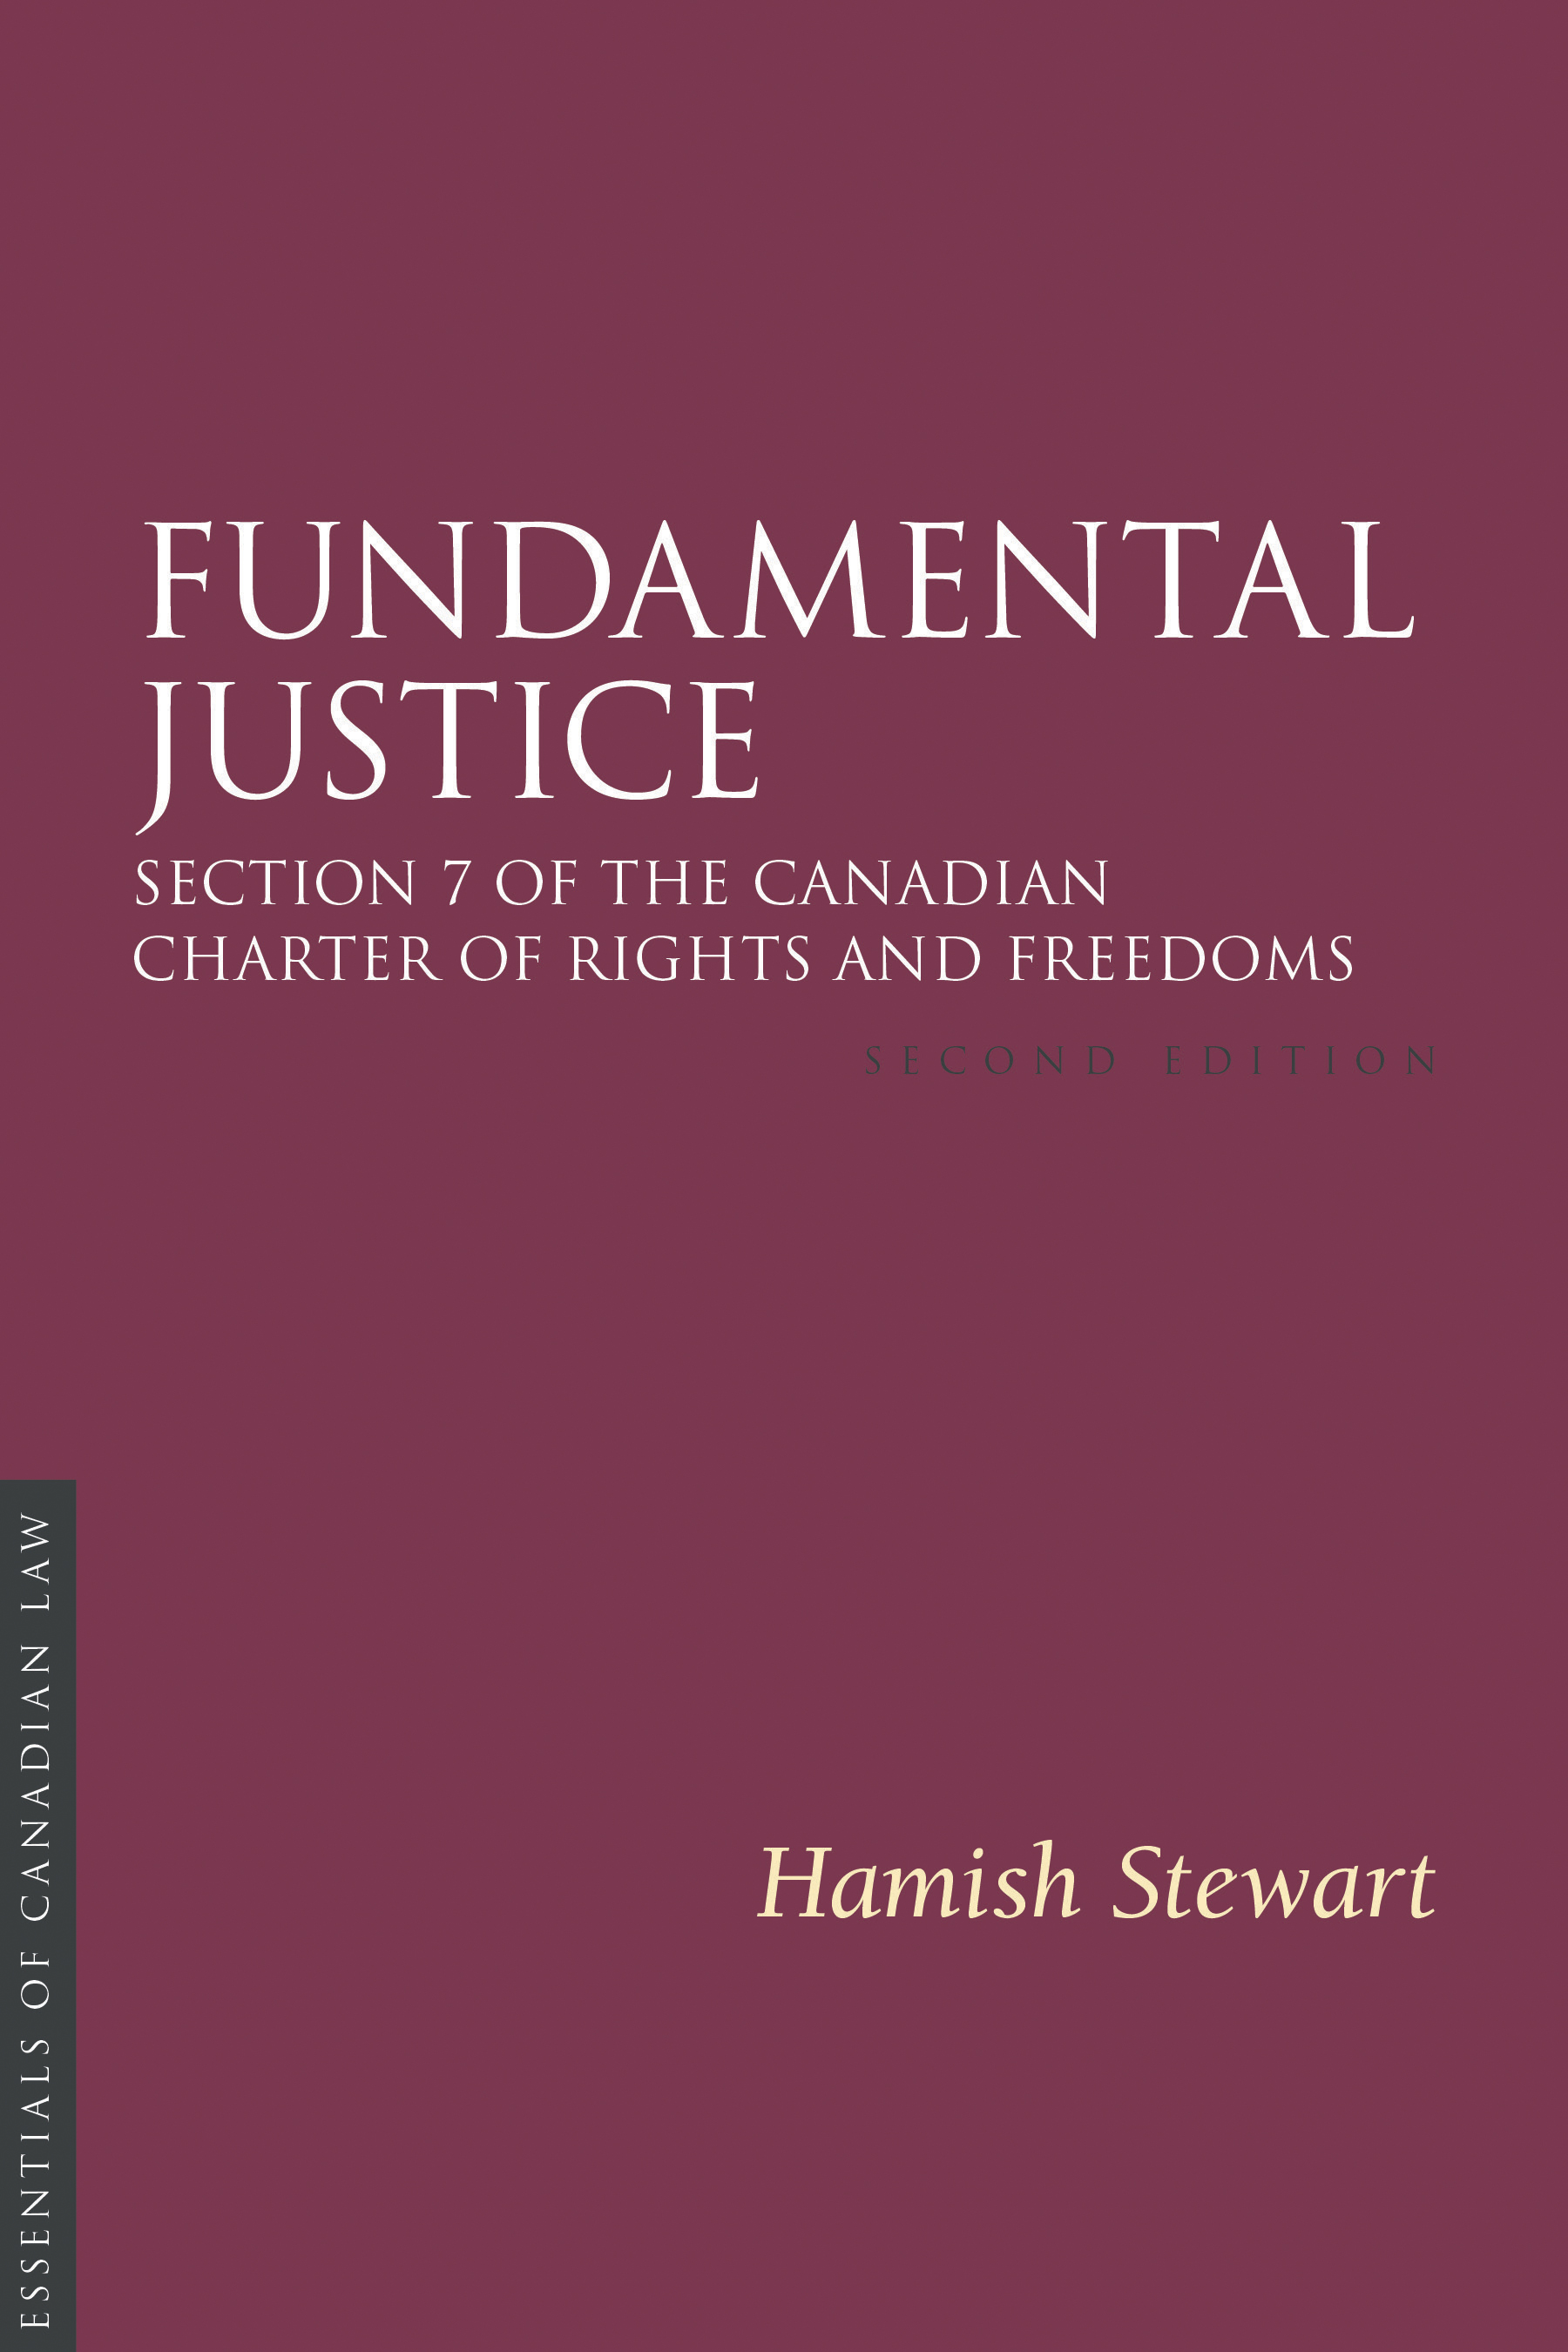 Book cover for Fundamental Justice by Hamish Stewart. As a book in the Essentials of Canadian Law series, the cover is a solid burgundy colour with a simple type treatment in capital serif letters in white.